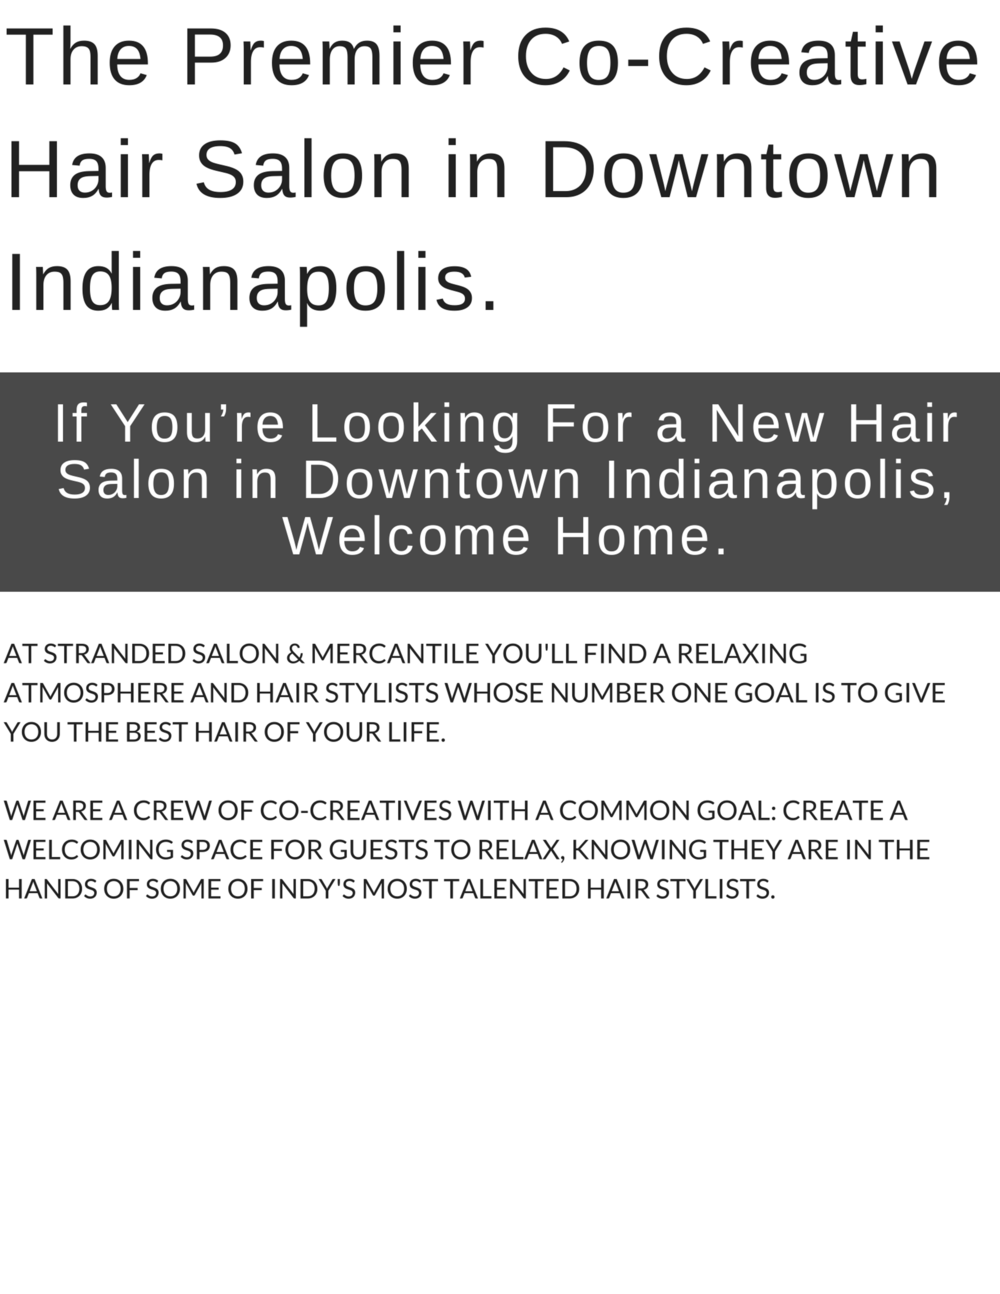 Stranded Salon Text Block.png